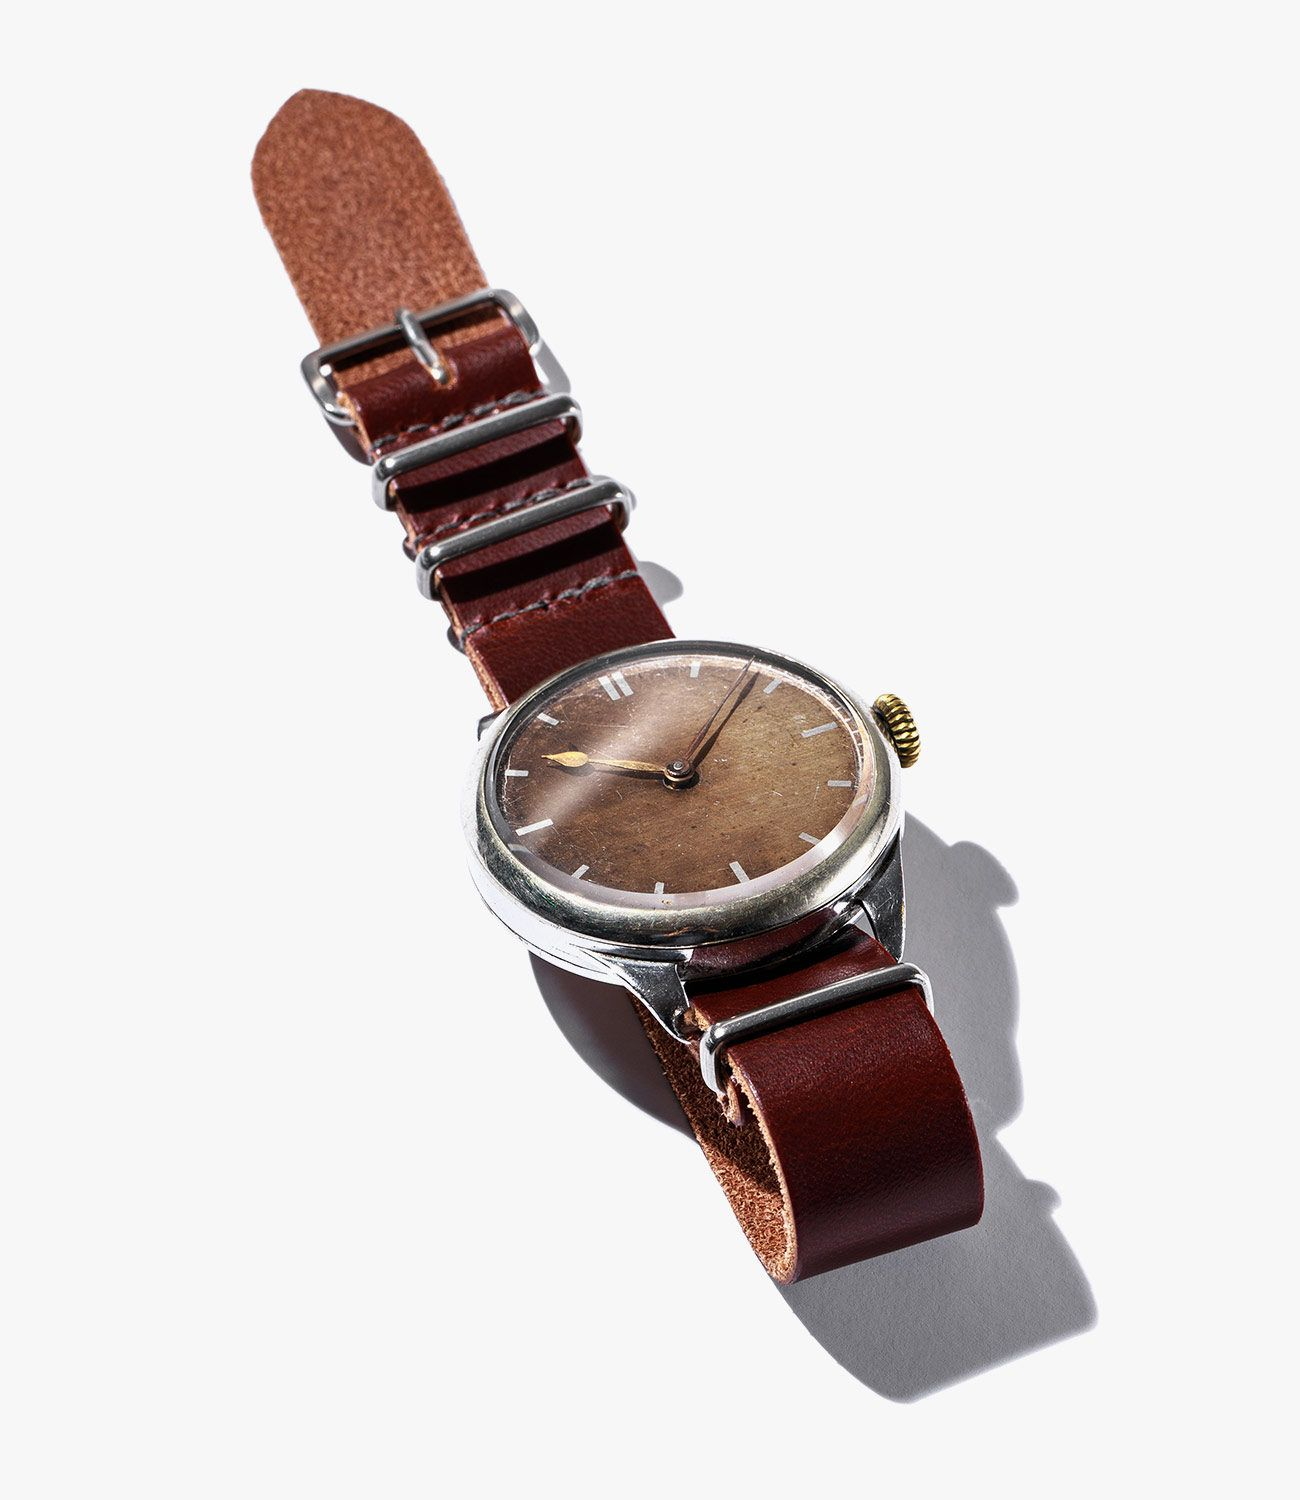 Leather-Watch-Bands-gear-patrol-Worn-and-Wound-Mil-Single-Pass-slide-1